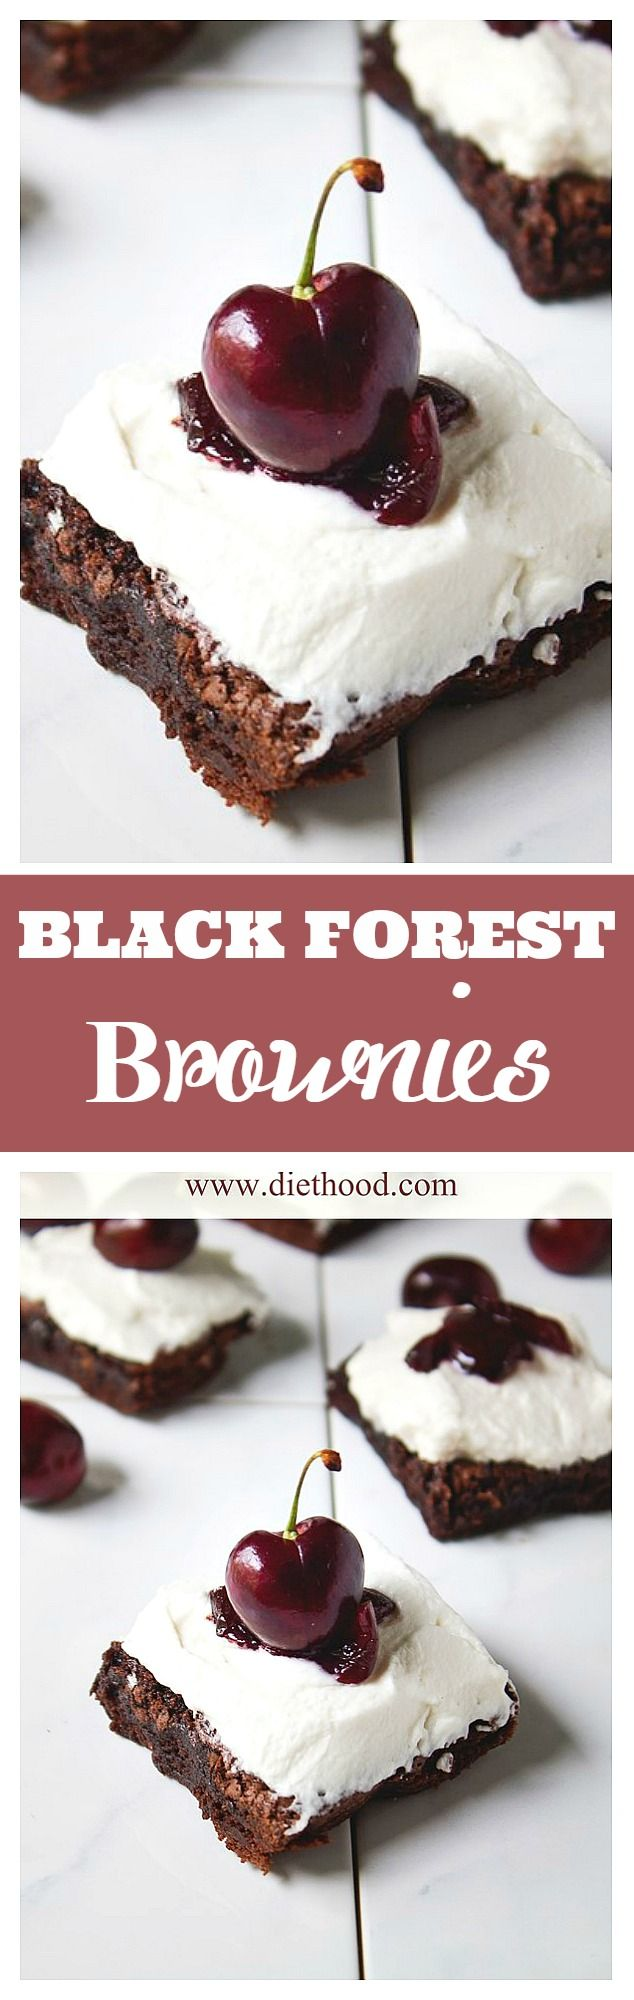 Chocolate and Cherry Liqueur make these Black Forest Brownies the best Brownies, yet!!